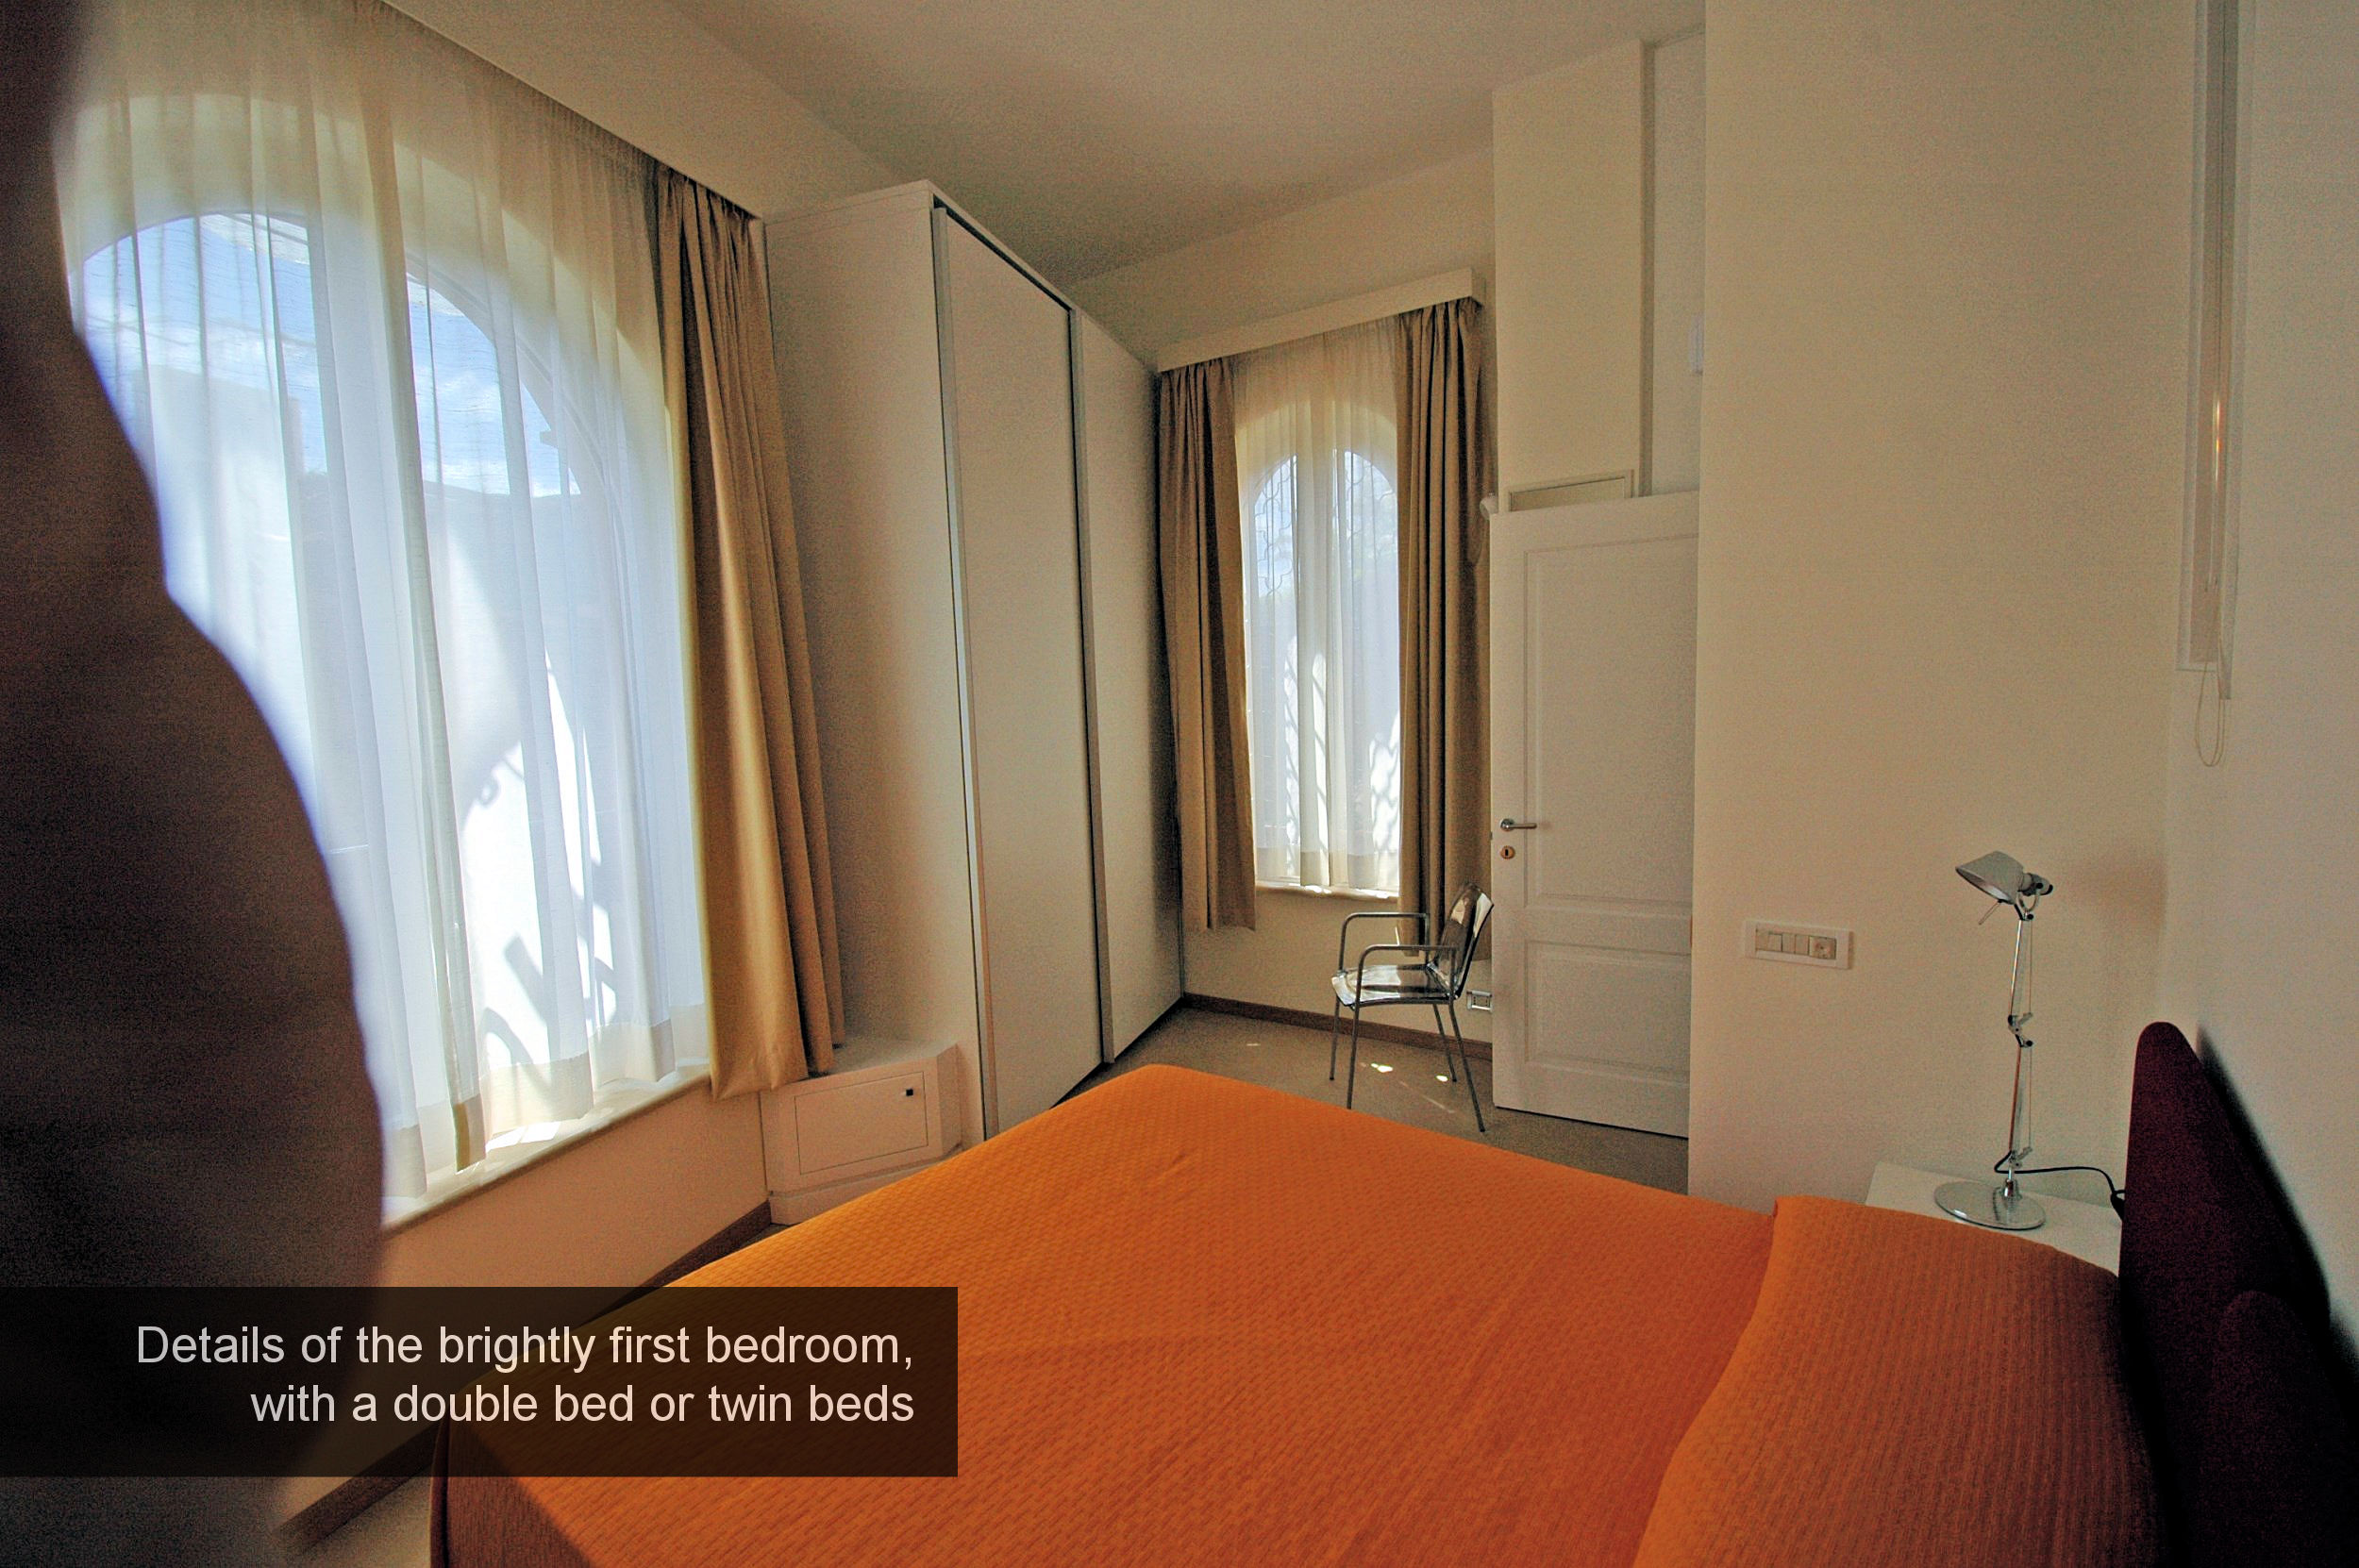 4) details of the first double bedroom, or twin